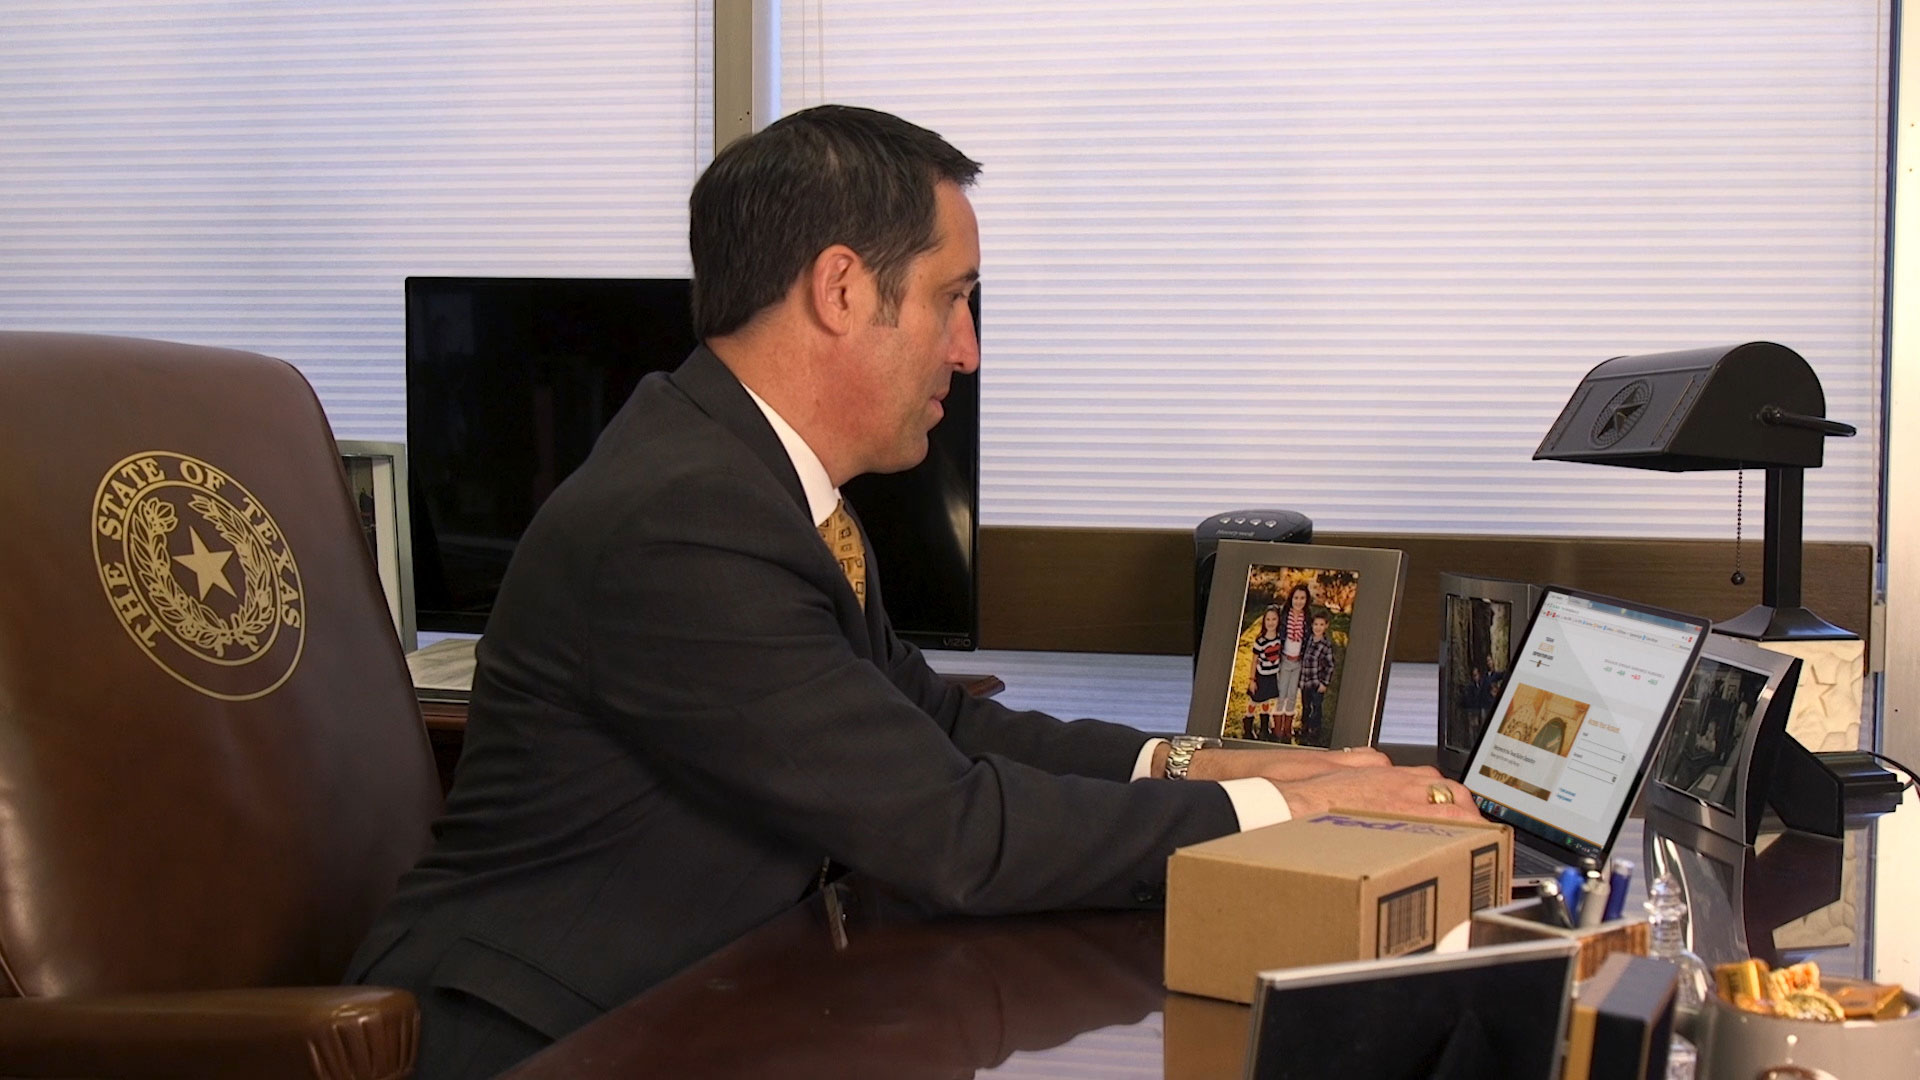 download Comptroller Glenn Hegar logging into TexasBullionDepository.gov